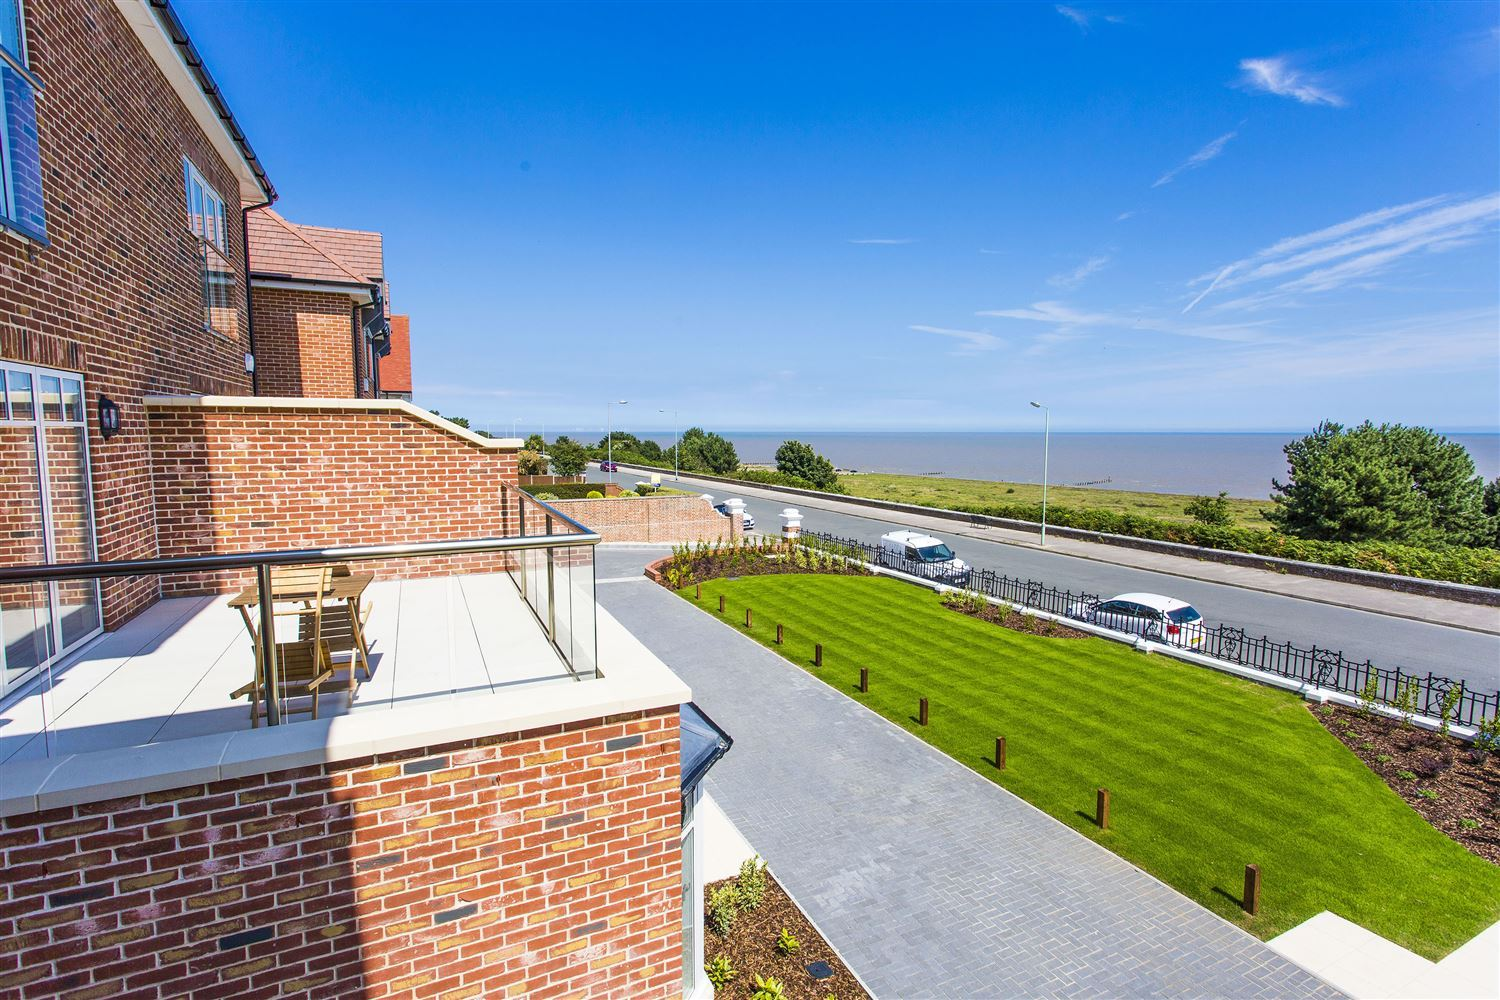 Orbit Glass Balustrading installed on a three-storey luxury villa overlooking the sea at Gunton near Lowestoft